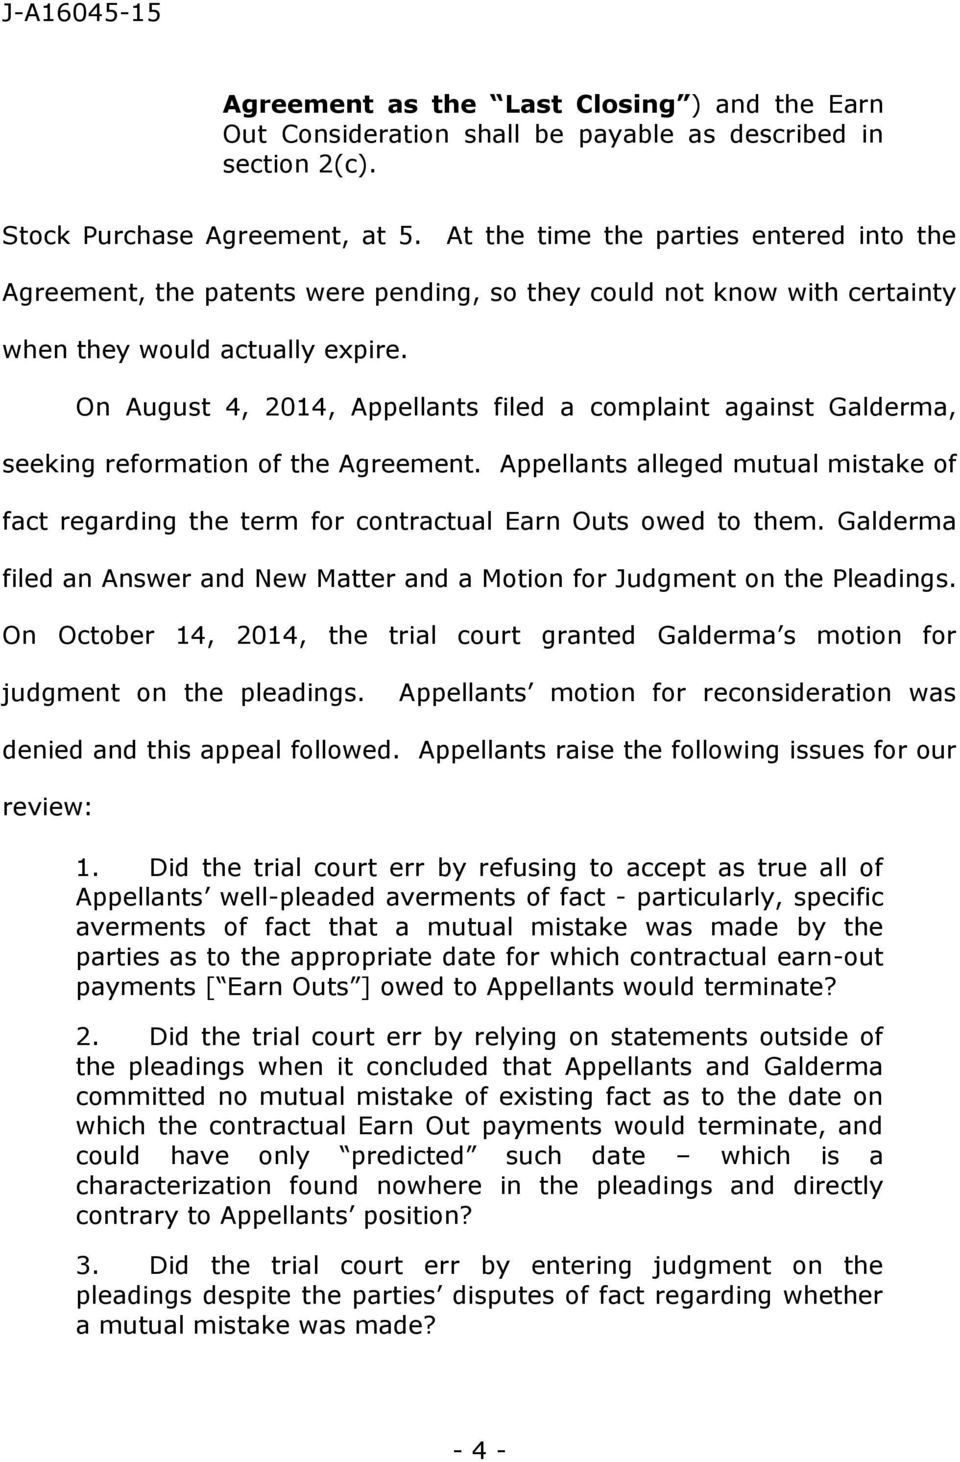 On August 4, 2014, Appellants filed a complaint against Galderma, seeking reformation of the Agreement.